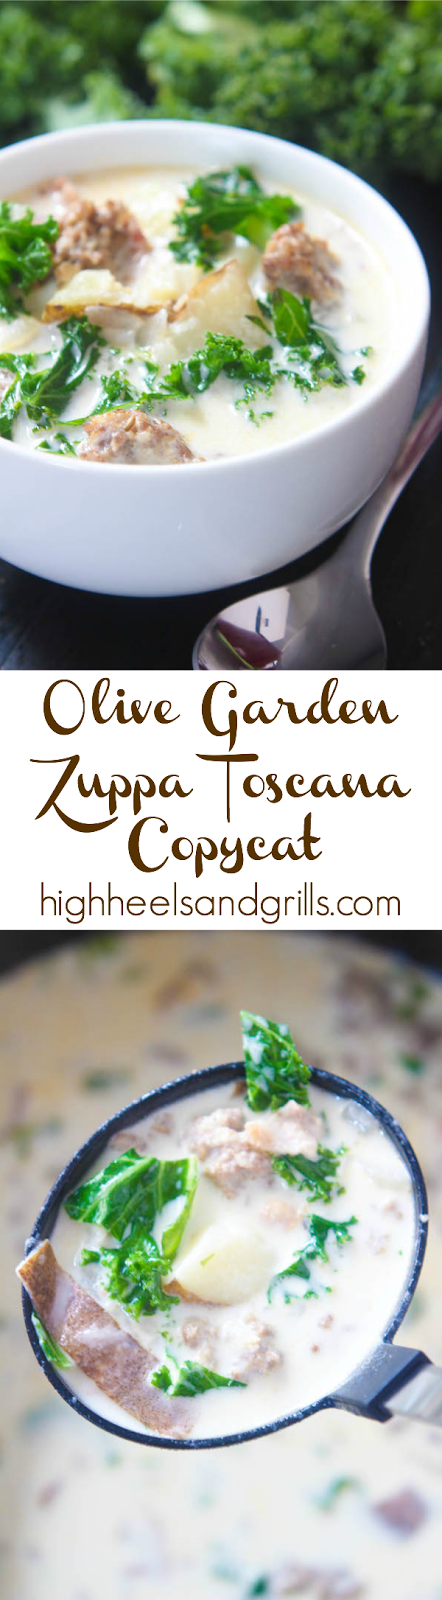 Olive garden zuppa toscana copycat high heels and grills - What kind of soup does olive garden have ...